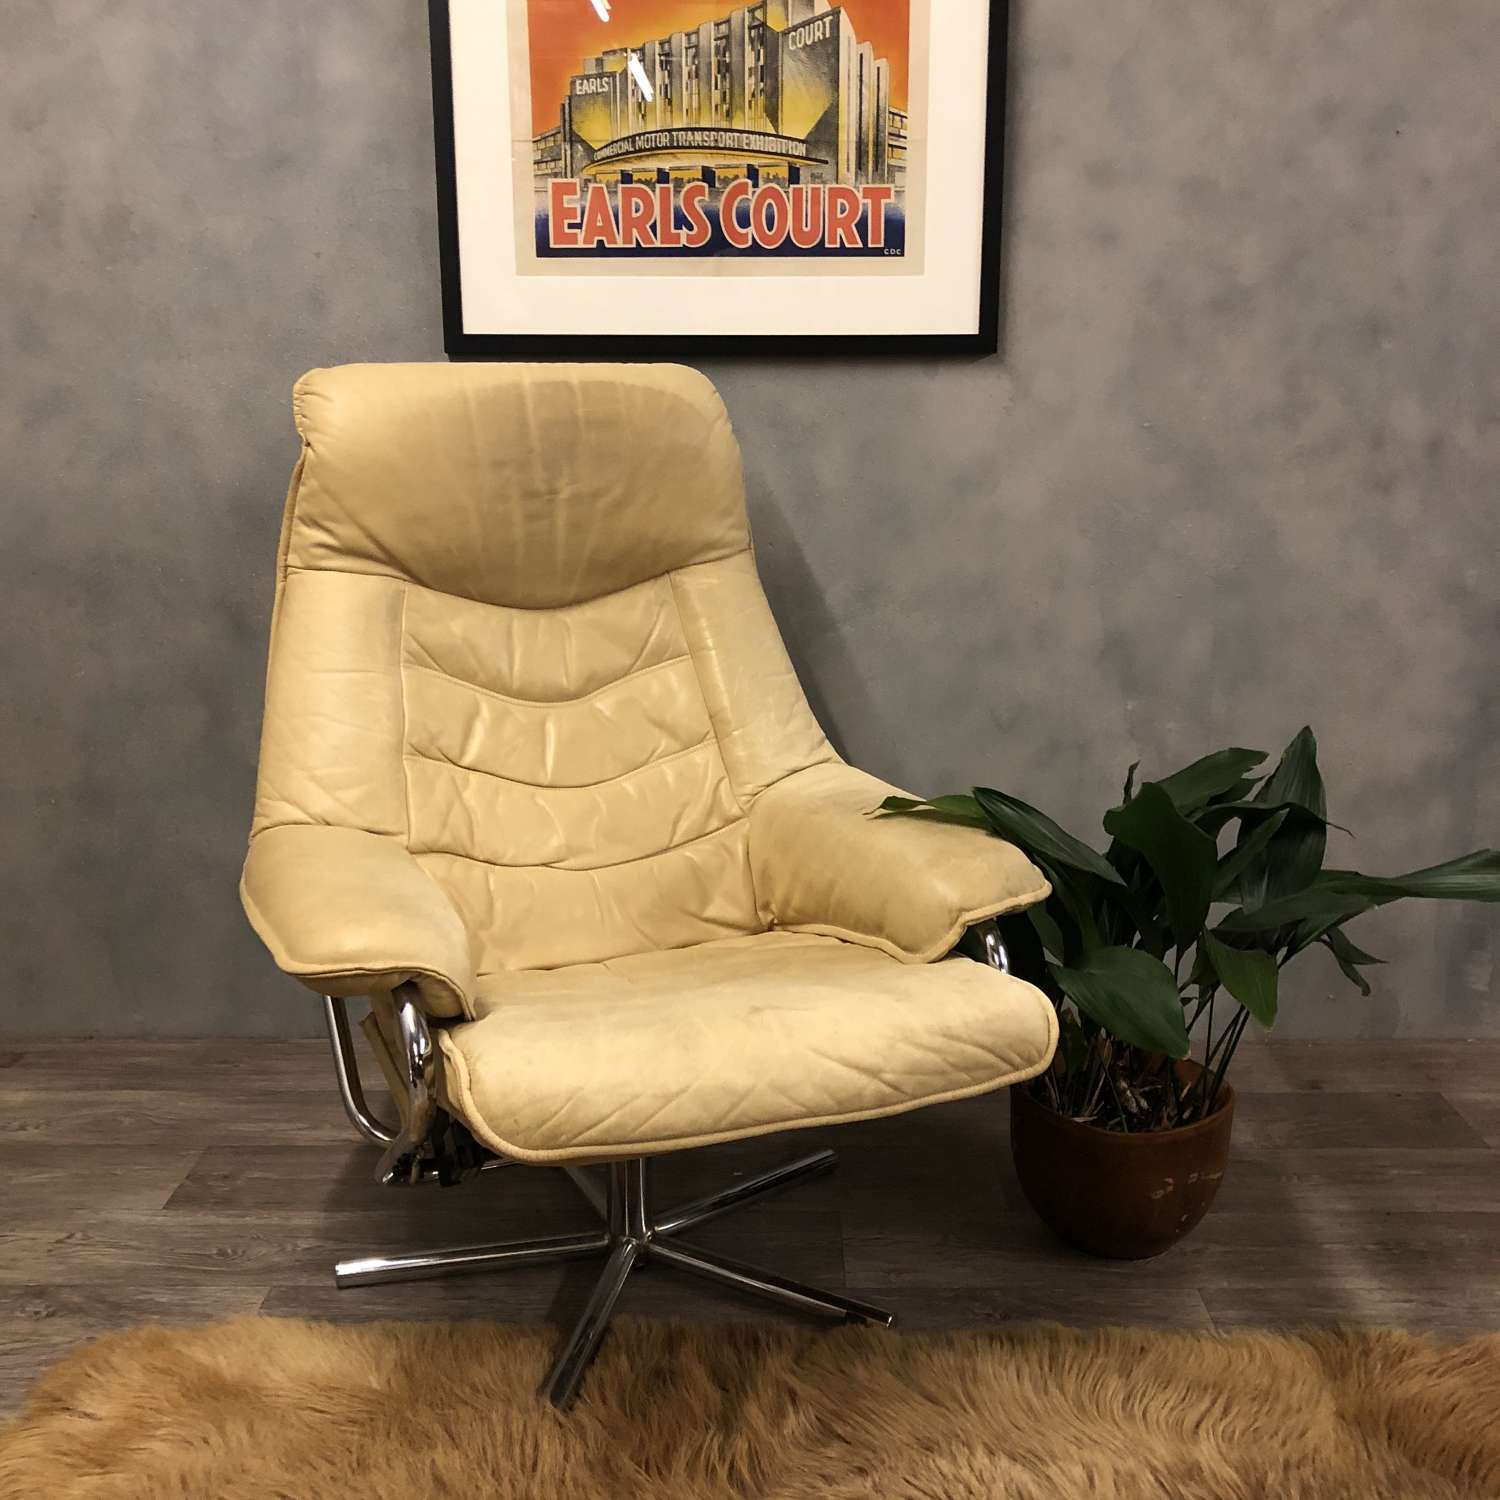 Midcentury Norwegian swivel chair in cream leather